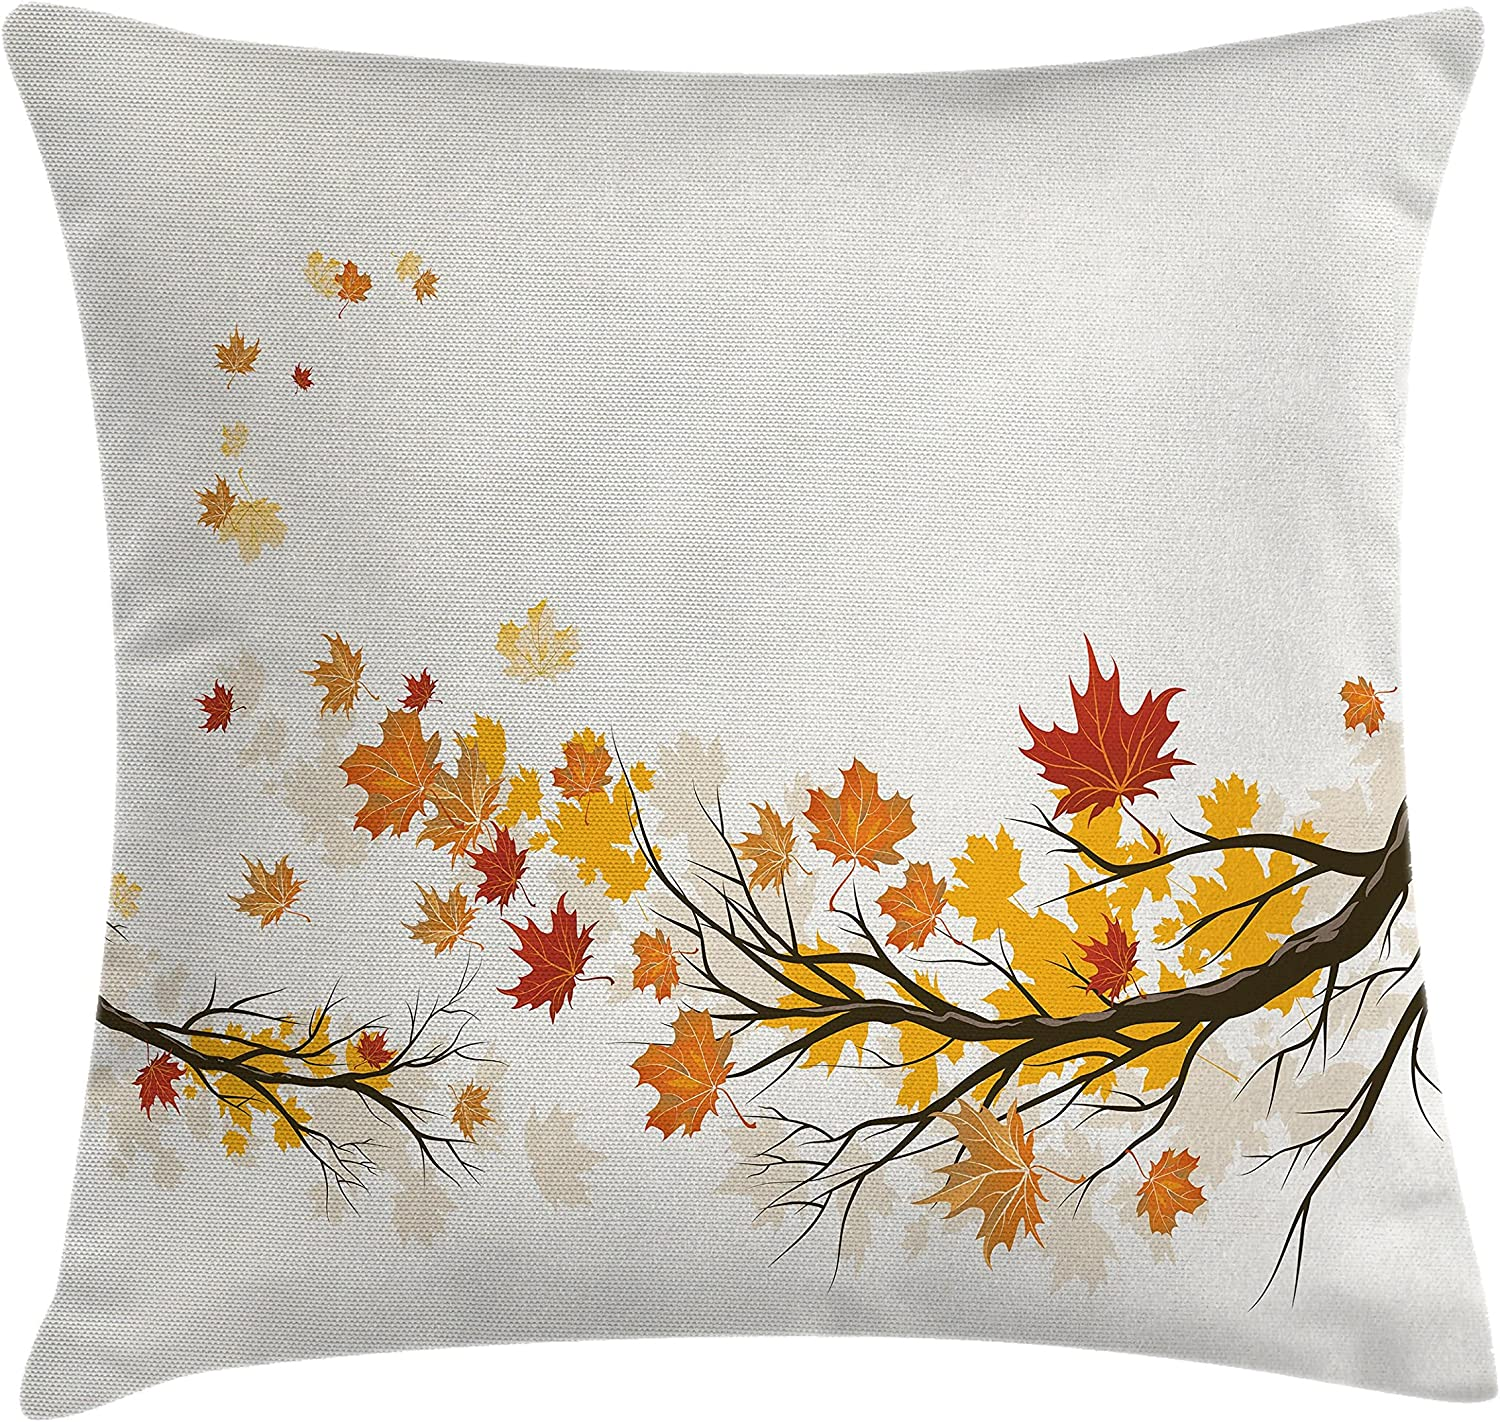 Amazon Com Ambesonne Fall Throw Pillow Cushion Cover Seasonal Tree Branches With Pale Colors September Foliage With Warm Leaves Print Decorative Square Accent Pillow Case 20 X 20 Inches Multicolor Home Kitchen